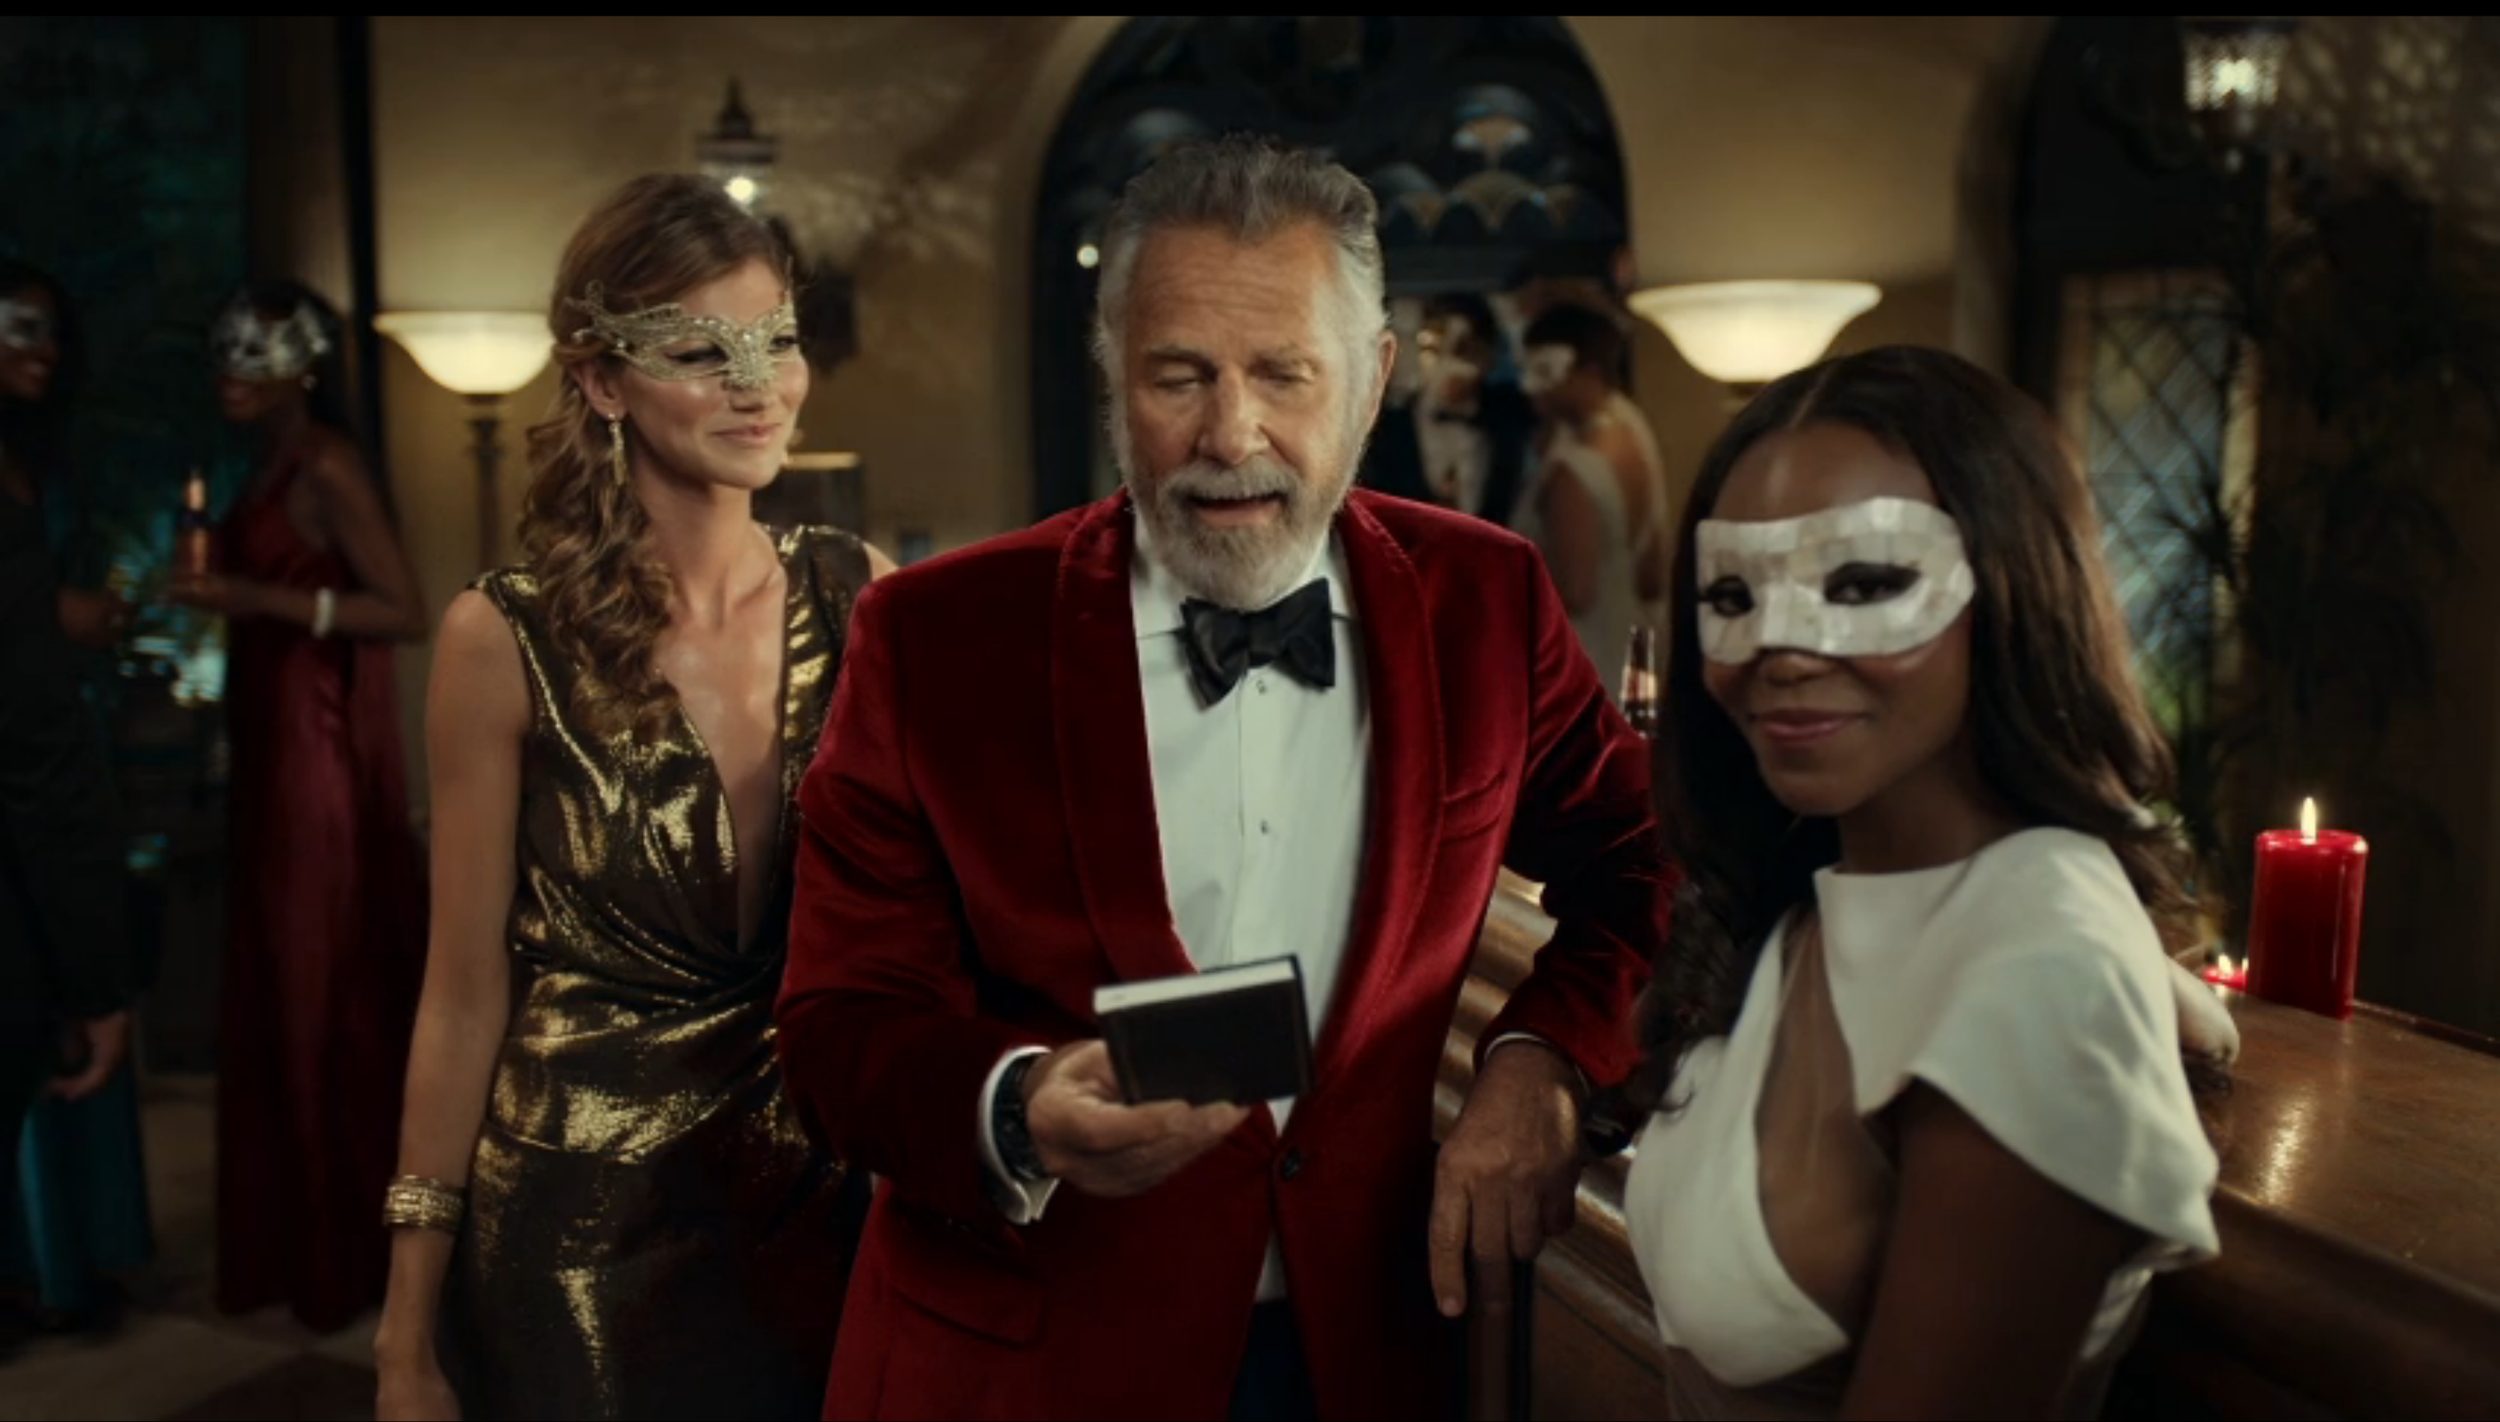 DOS EQUIS 'MOST INTERESTING MAN - HALLOWEEN': DIRECTORS-PATRICK SHERMAN, JORDAN FISH. PRODUCTION COMPANY- M SS NG P ECES.